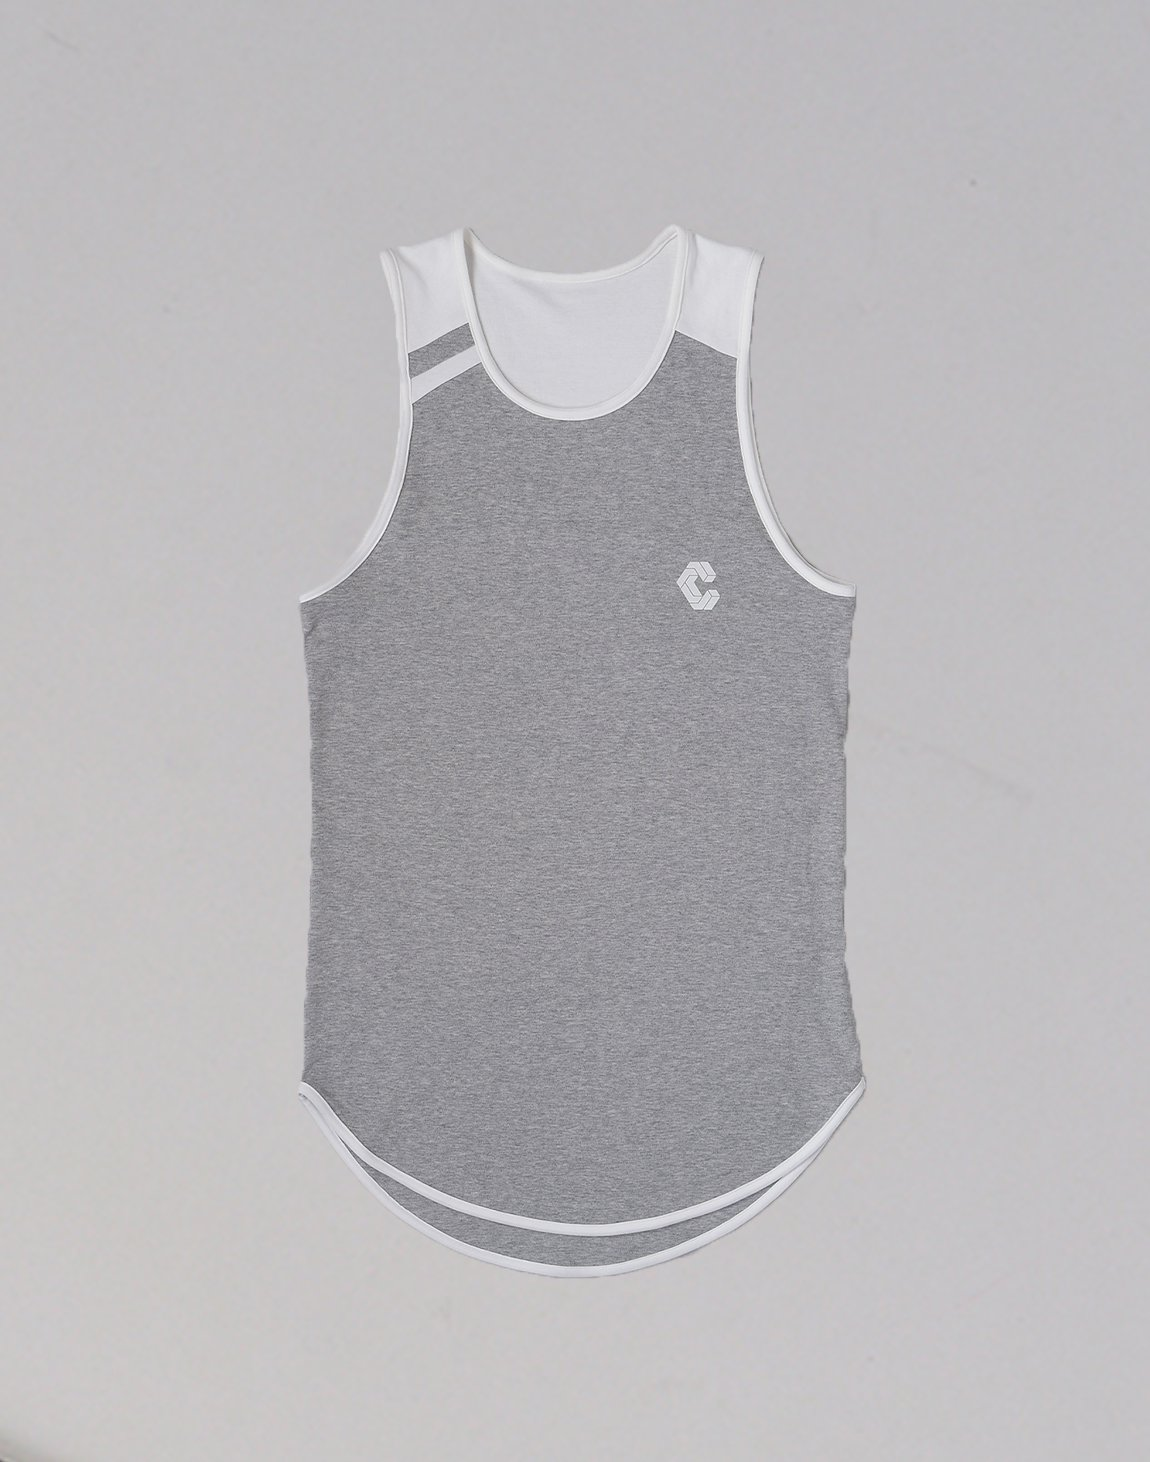 <img class='new_mark_img1' src='https://img.shop-pro.jp/img/new/icons1.gif' style='border:none;display:inline;margin:0px;padding:0px;width:auto;' />CRONOS UNDER BACK LOGO TANKTOP【GRAY】